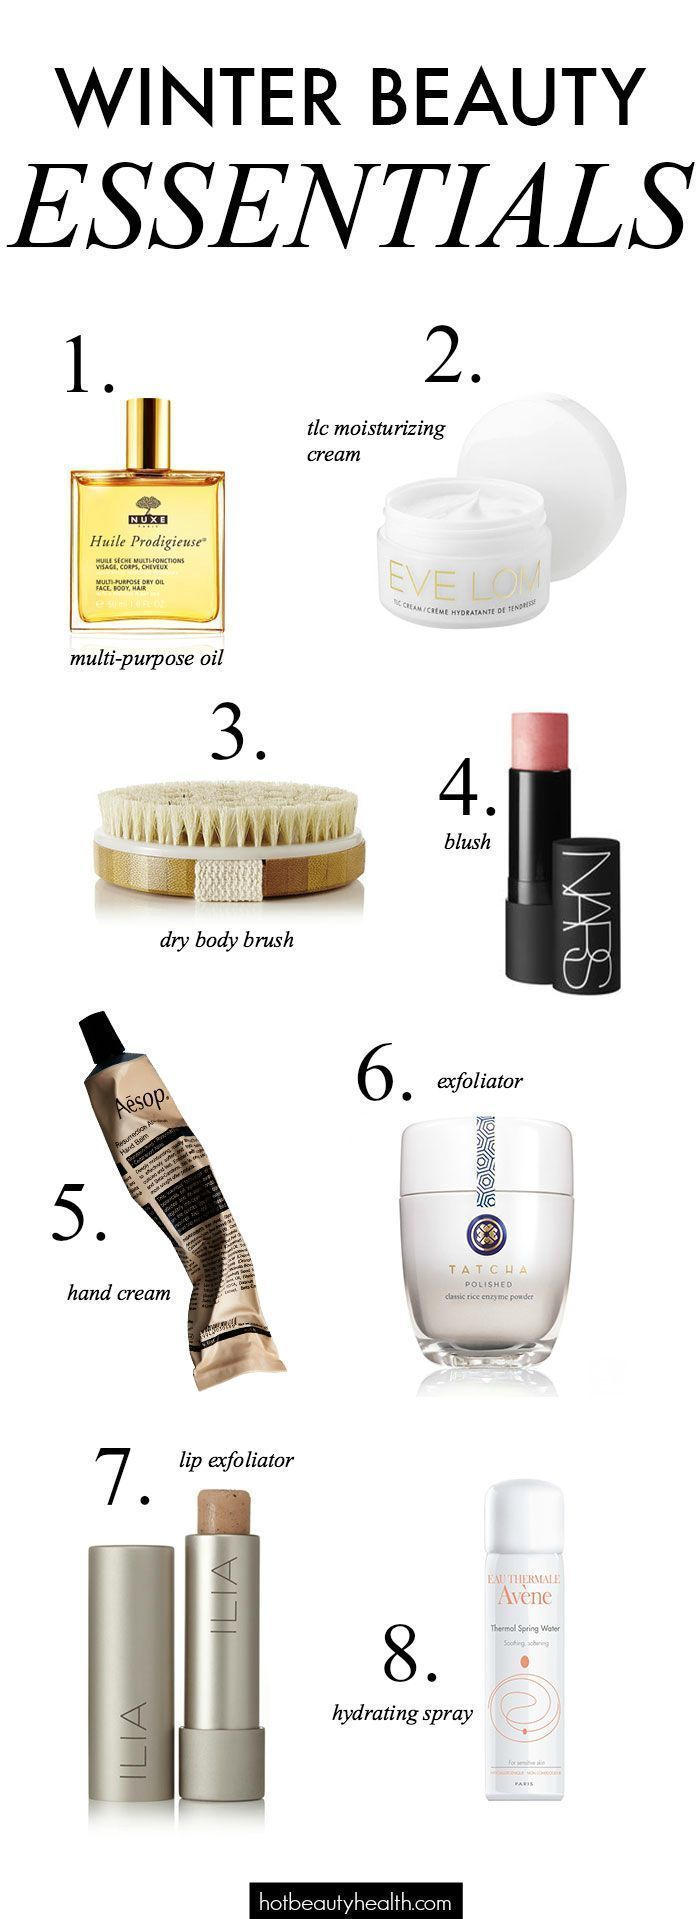 Dry skin? Check! Dry hands, hair, and everything? Check, check and check!Here are 8 winter beauty essentials and tips you'll need to survive this winter. Hot Beauty Health #skincare #haircare #winterbeauty